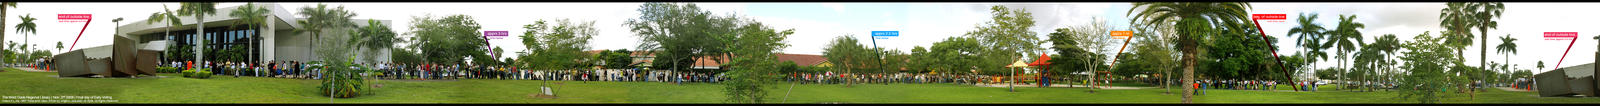 Early Voting Day-360 View by angelaacevedo